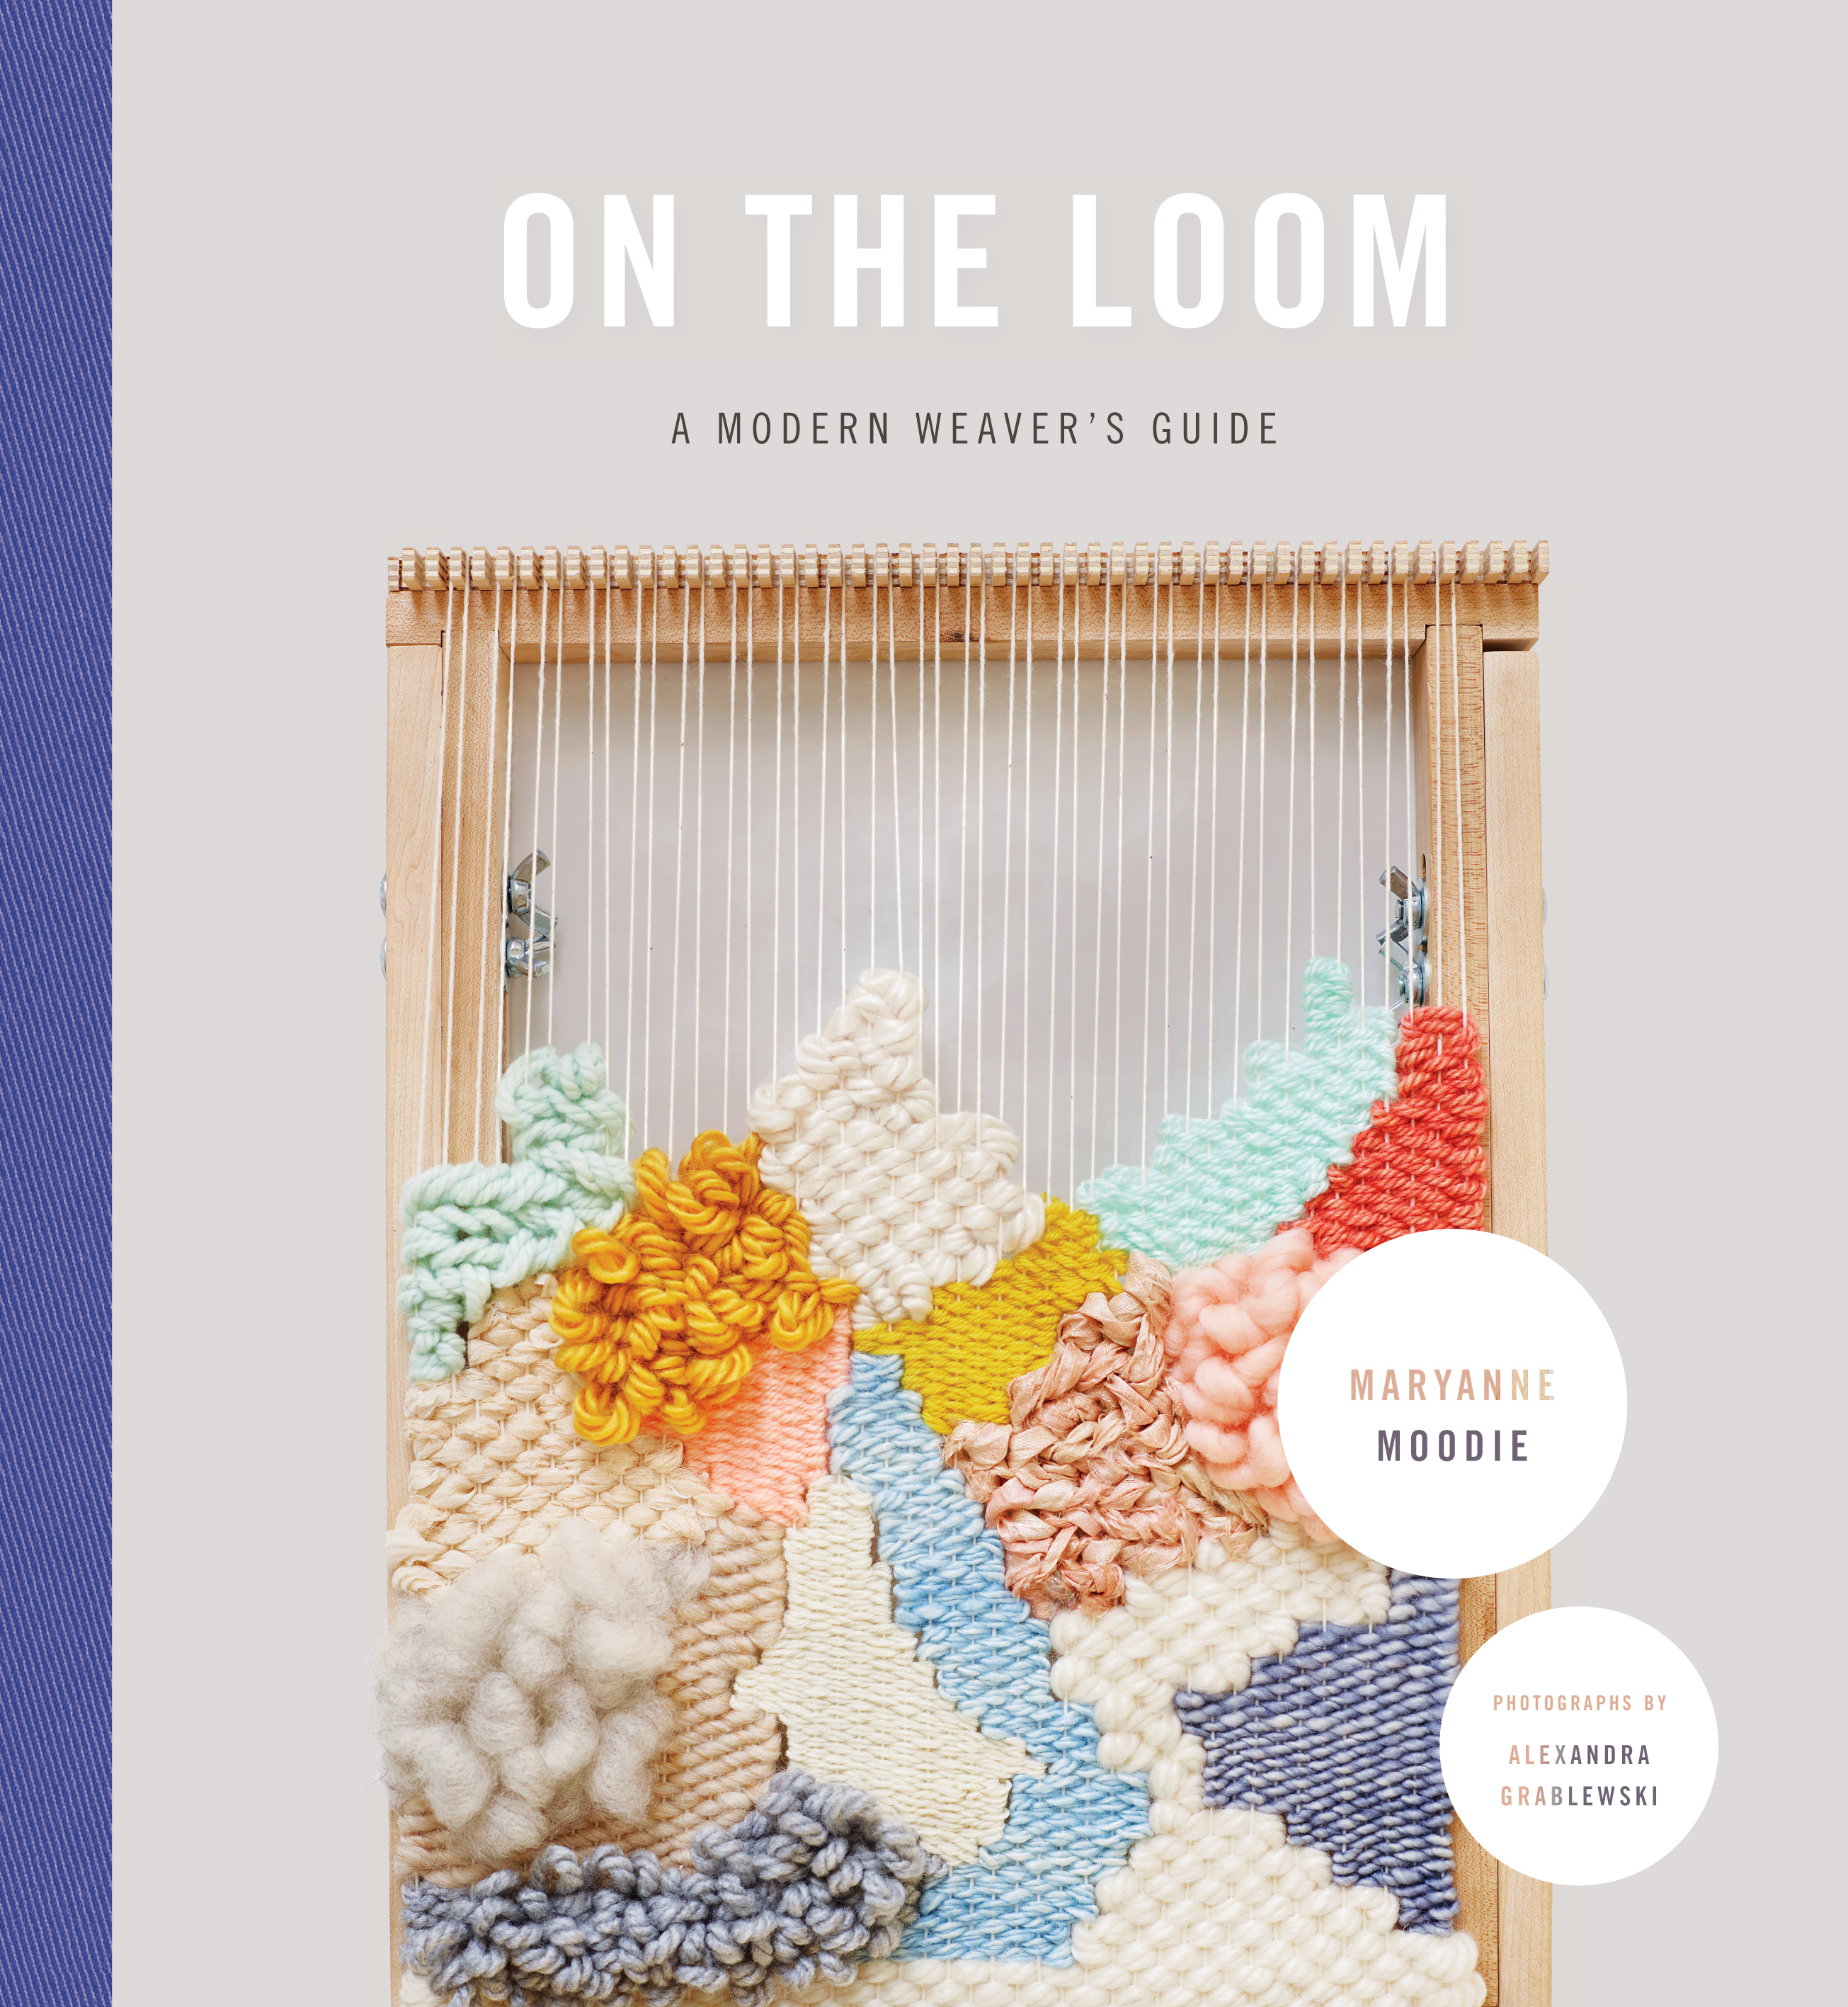 Book Launch: On the Loom by Maryanne Moodie